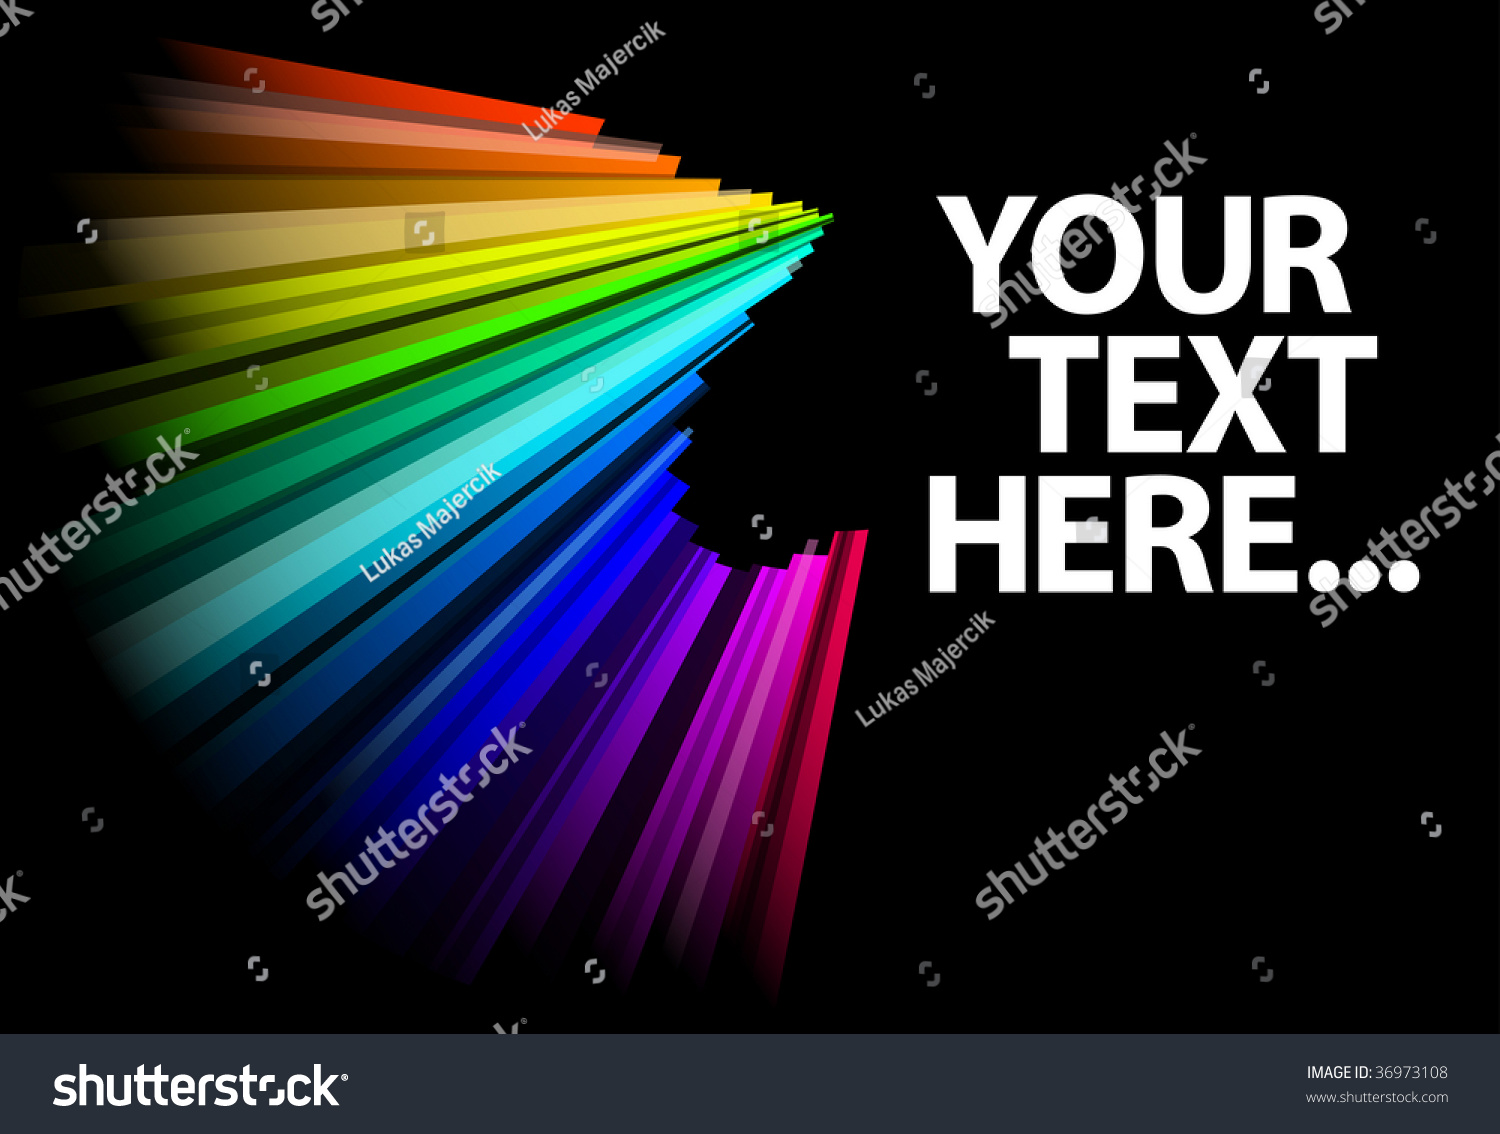 A  parative Study Of 5 G  work With Existing Wireless  munication Technologies Paper Id 09 as well How Is A Traffic Light Like The Bible Childrens Message March 11 2018 further Nsa Text Message 200 Million Dishfire in addition Stock Vector Abstract Colorful Background With Custom Text besides E5 AE A2 E6 88 B7. on text message radio waves